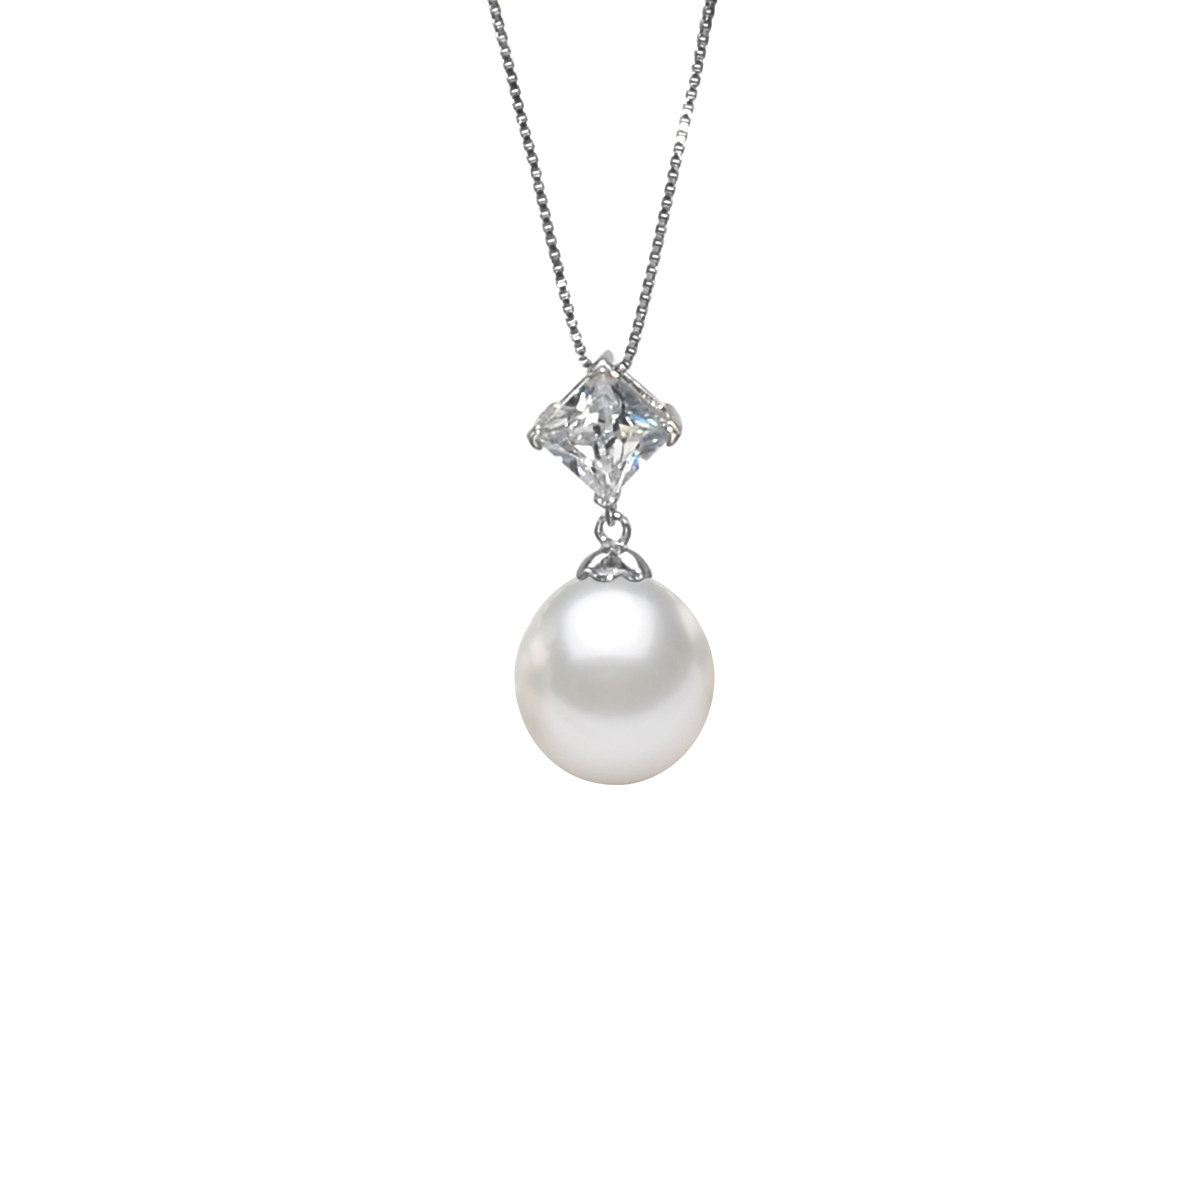 Crux-Cultured fresh water pearl with sterling silver & cz pendant